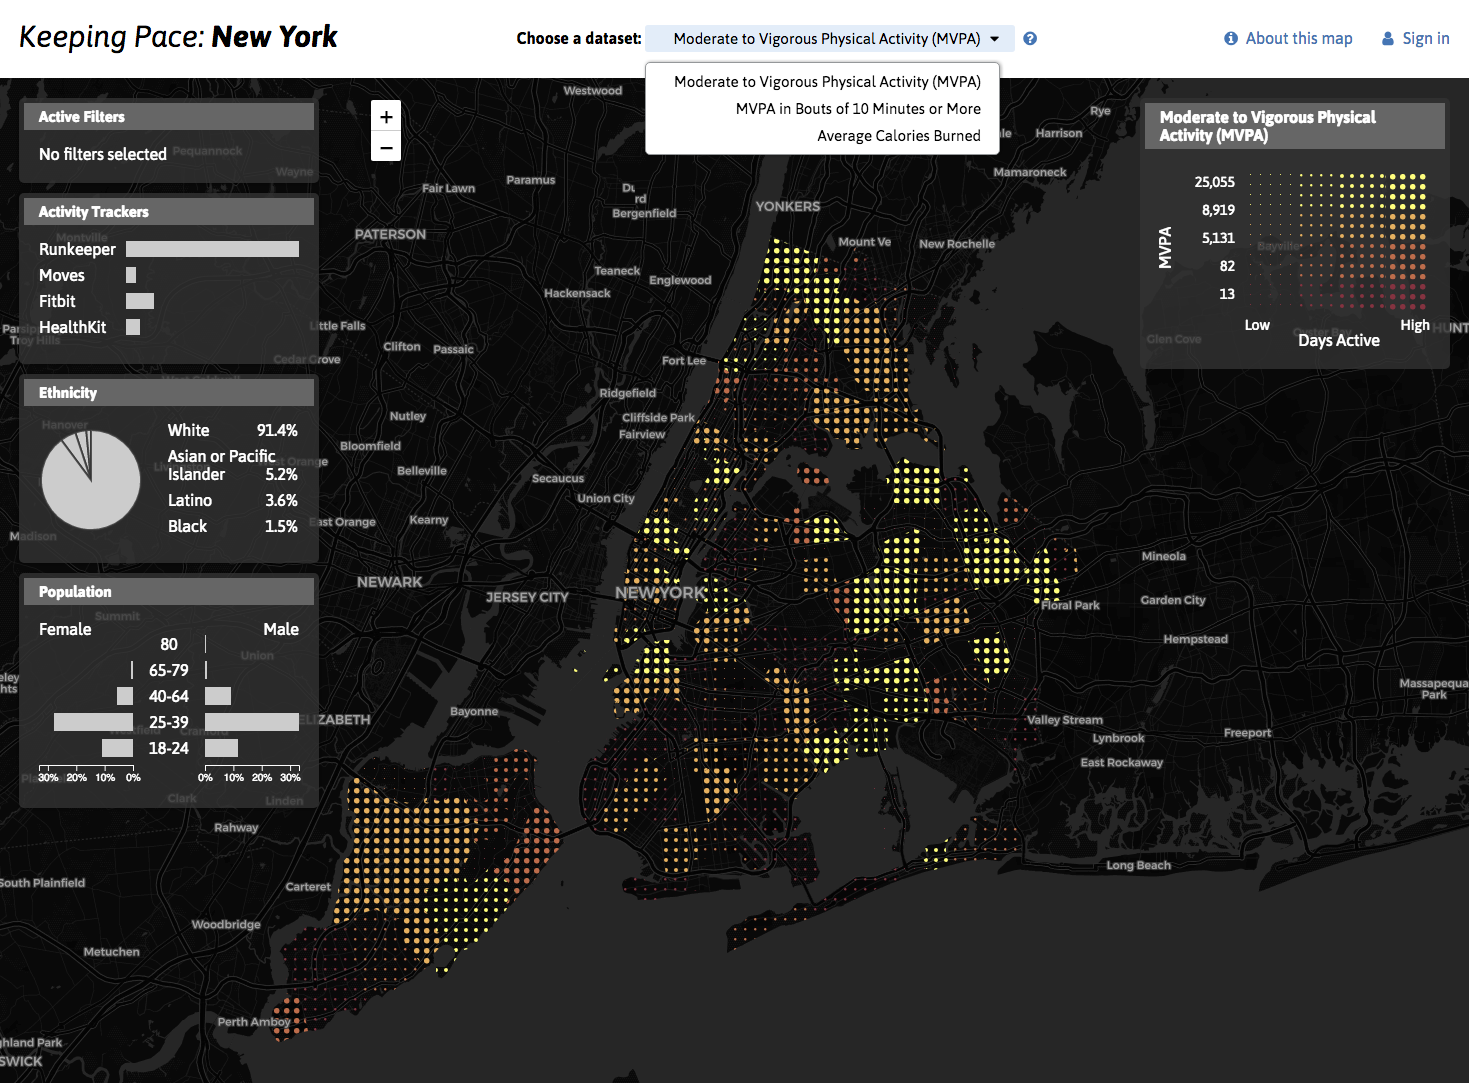 A dashboard illustrating physical activity tracker data across New York City. We crowdsource such data and then use it to answer relevant public health questions.